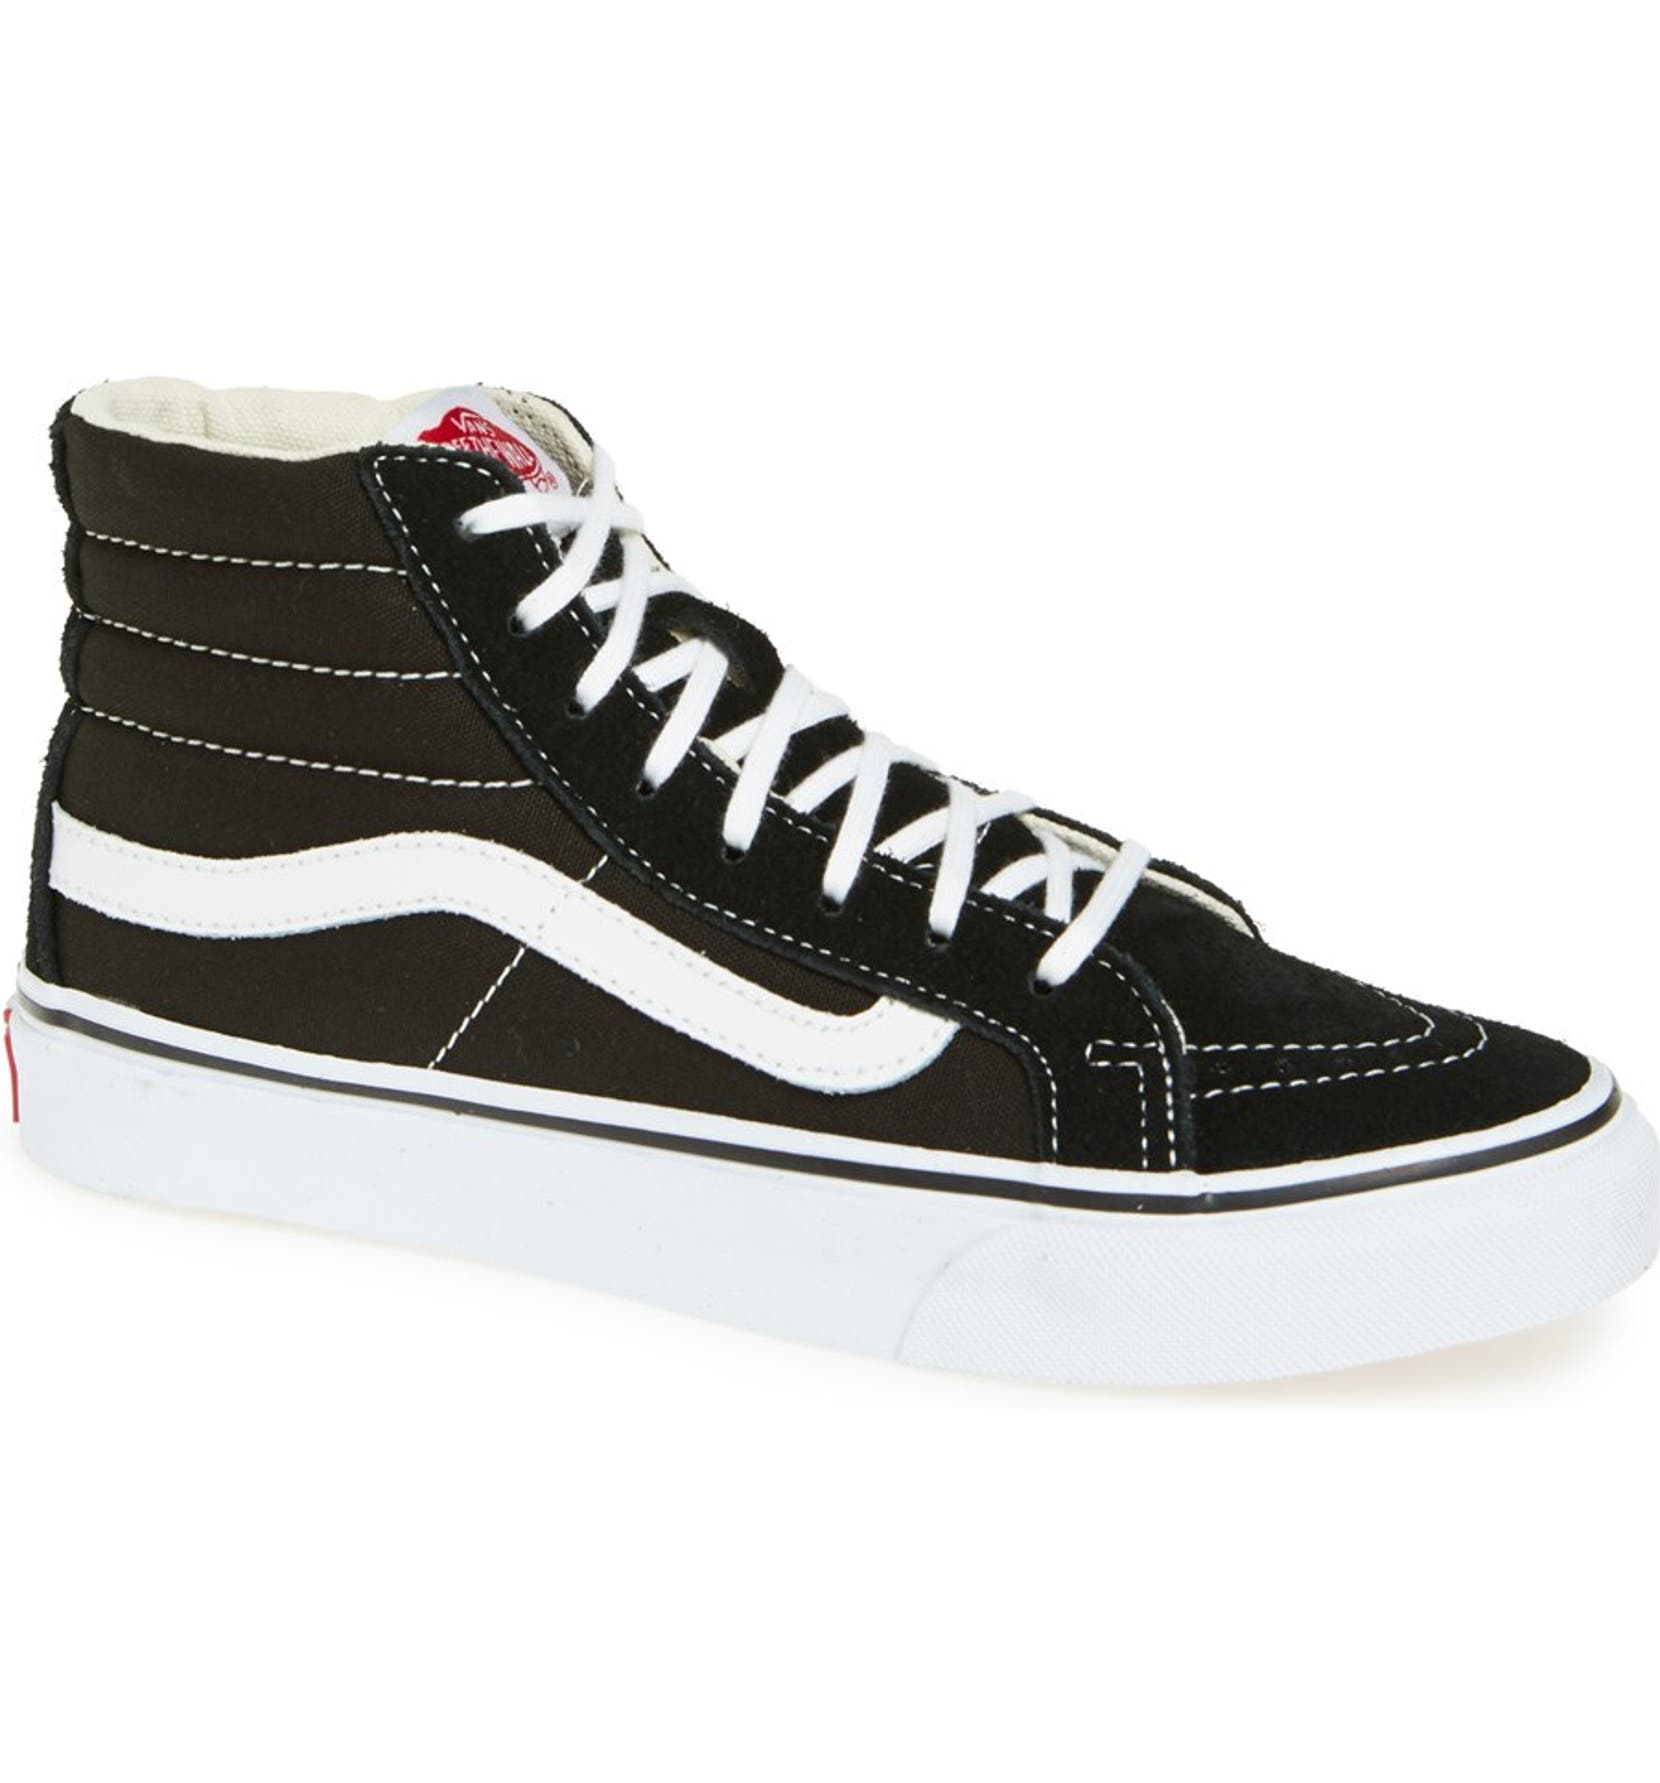 c71b43ecda Vans Sk8-Hi Slim High Top Sneaker (Women)